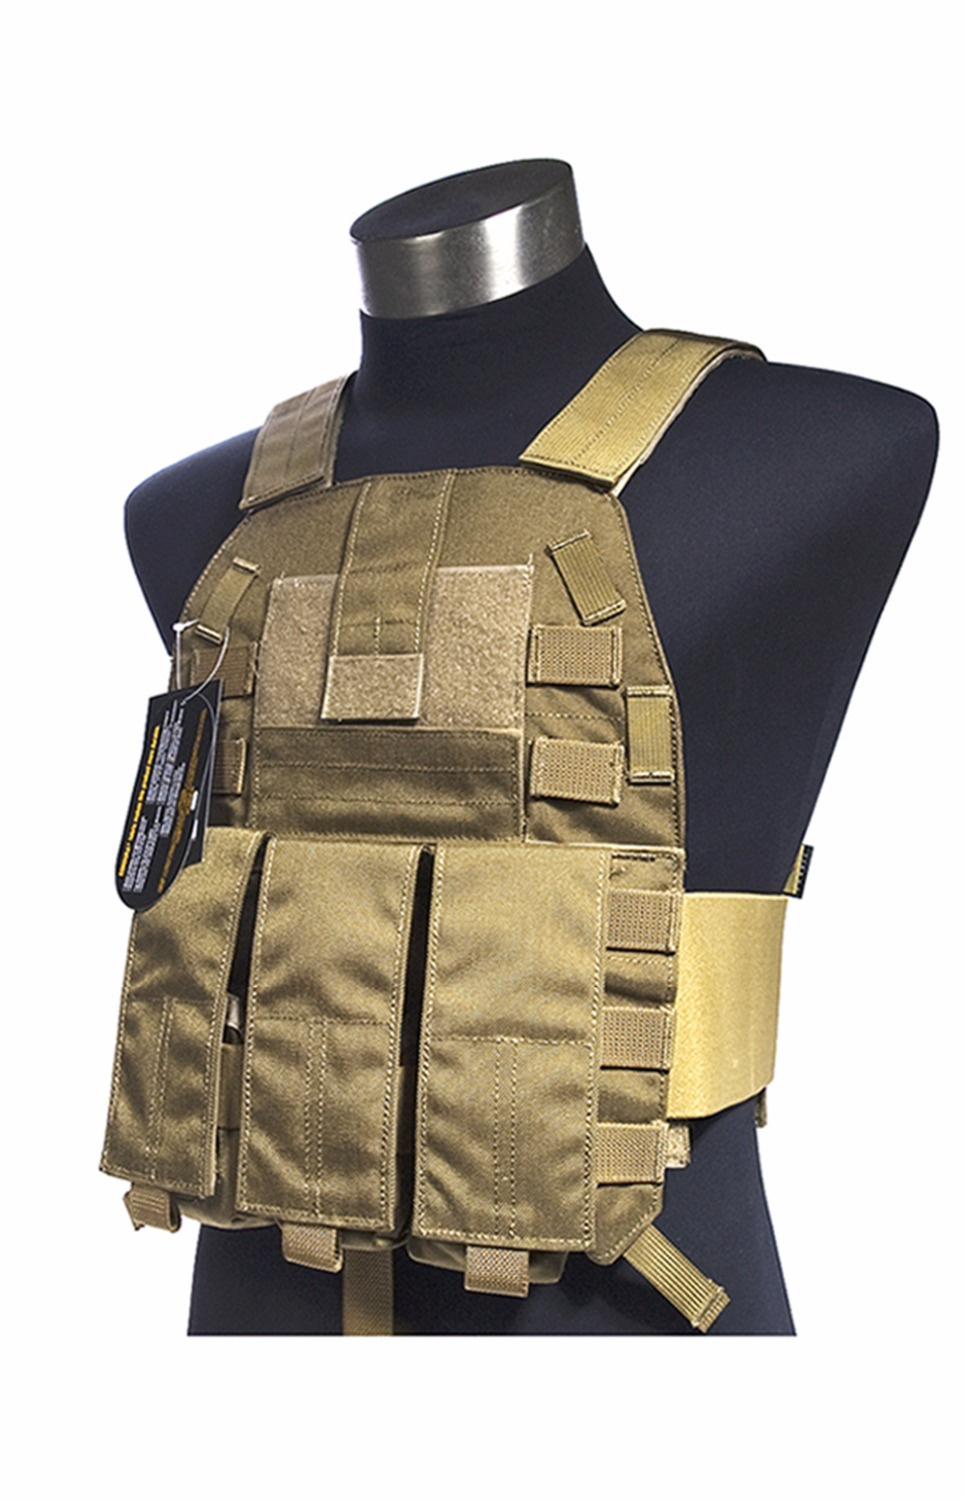 MILITECH Mil Spec Military LT6094K Coyote Brown CB Plate Carrier Combat Molle Tactical Vest Army Military Combat Vests Carrier  цена и фото